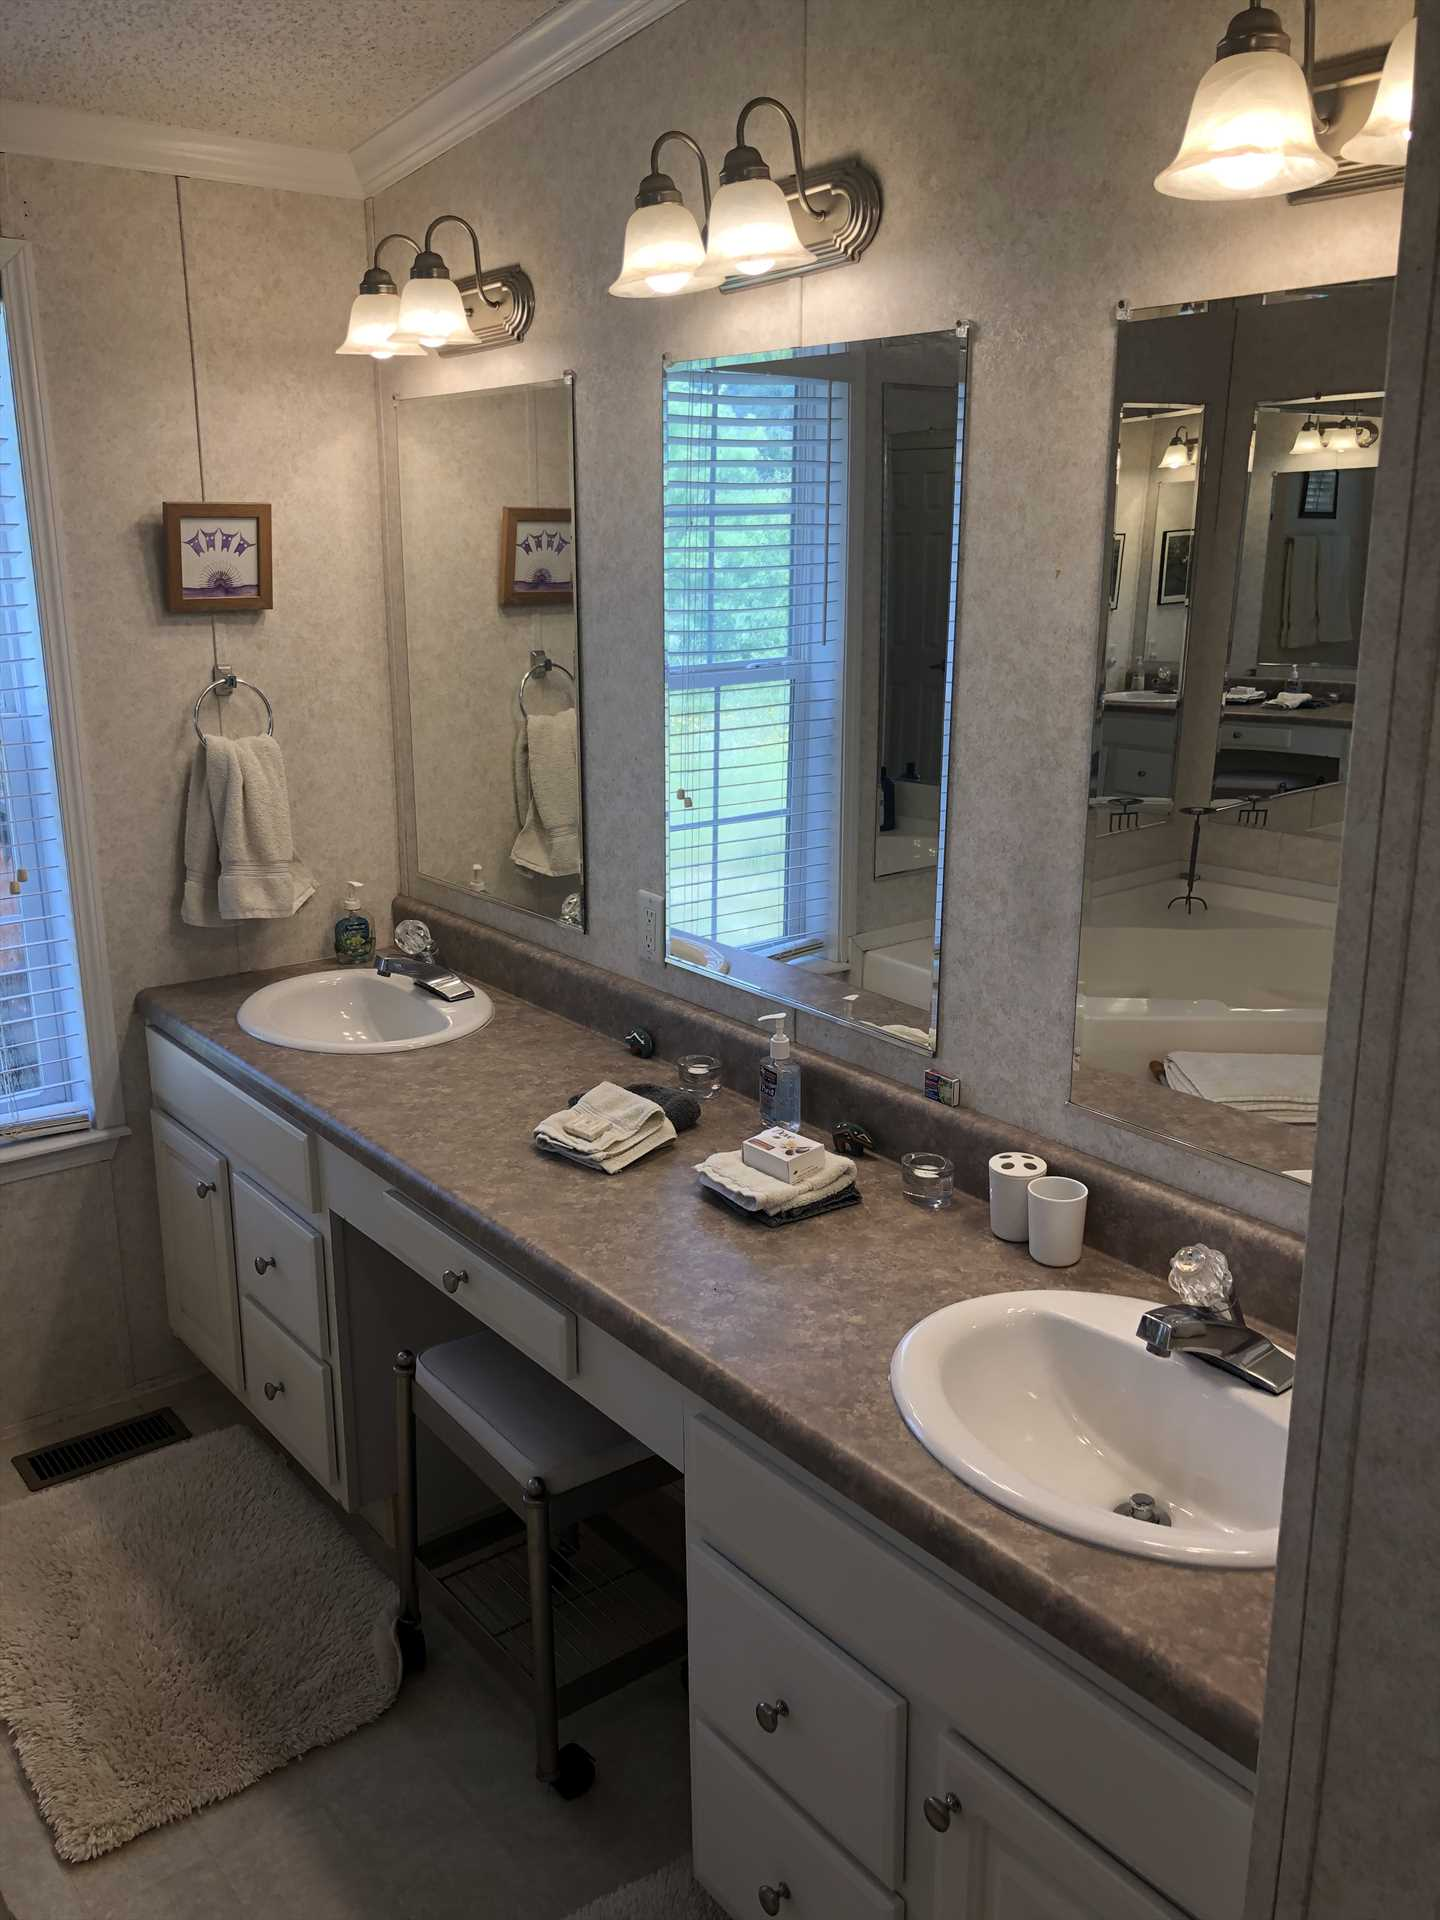 Twin mirrored vanities, tons of counter space, and a generous supply of clean bath linens round out what you'll find in the master bath.